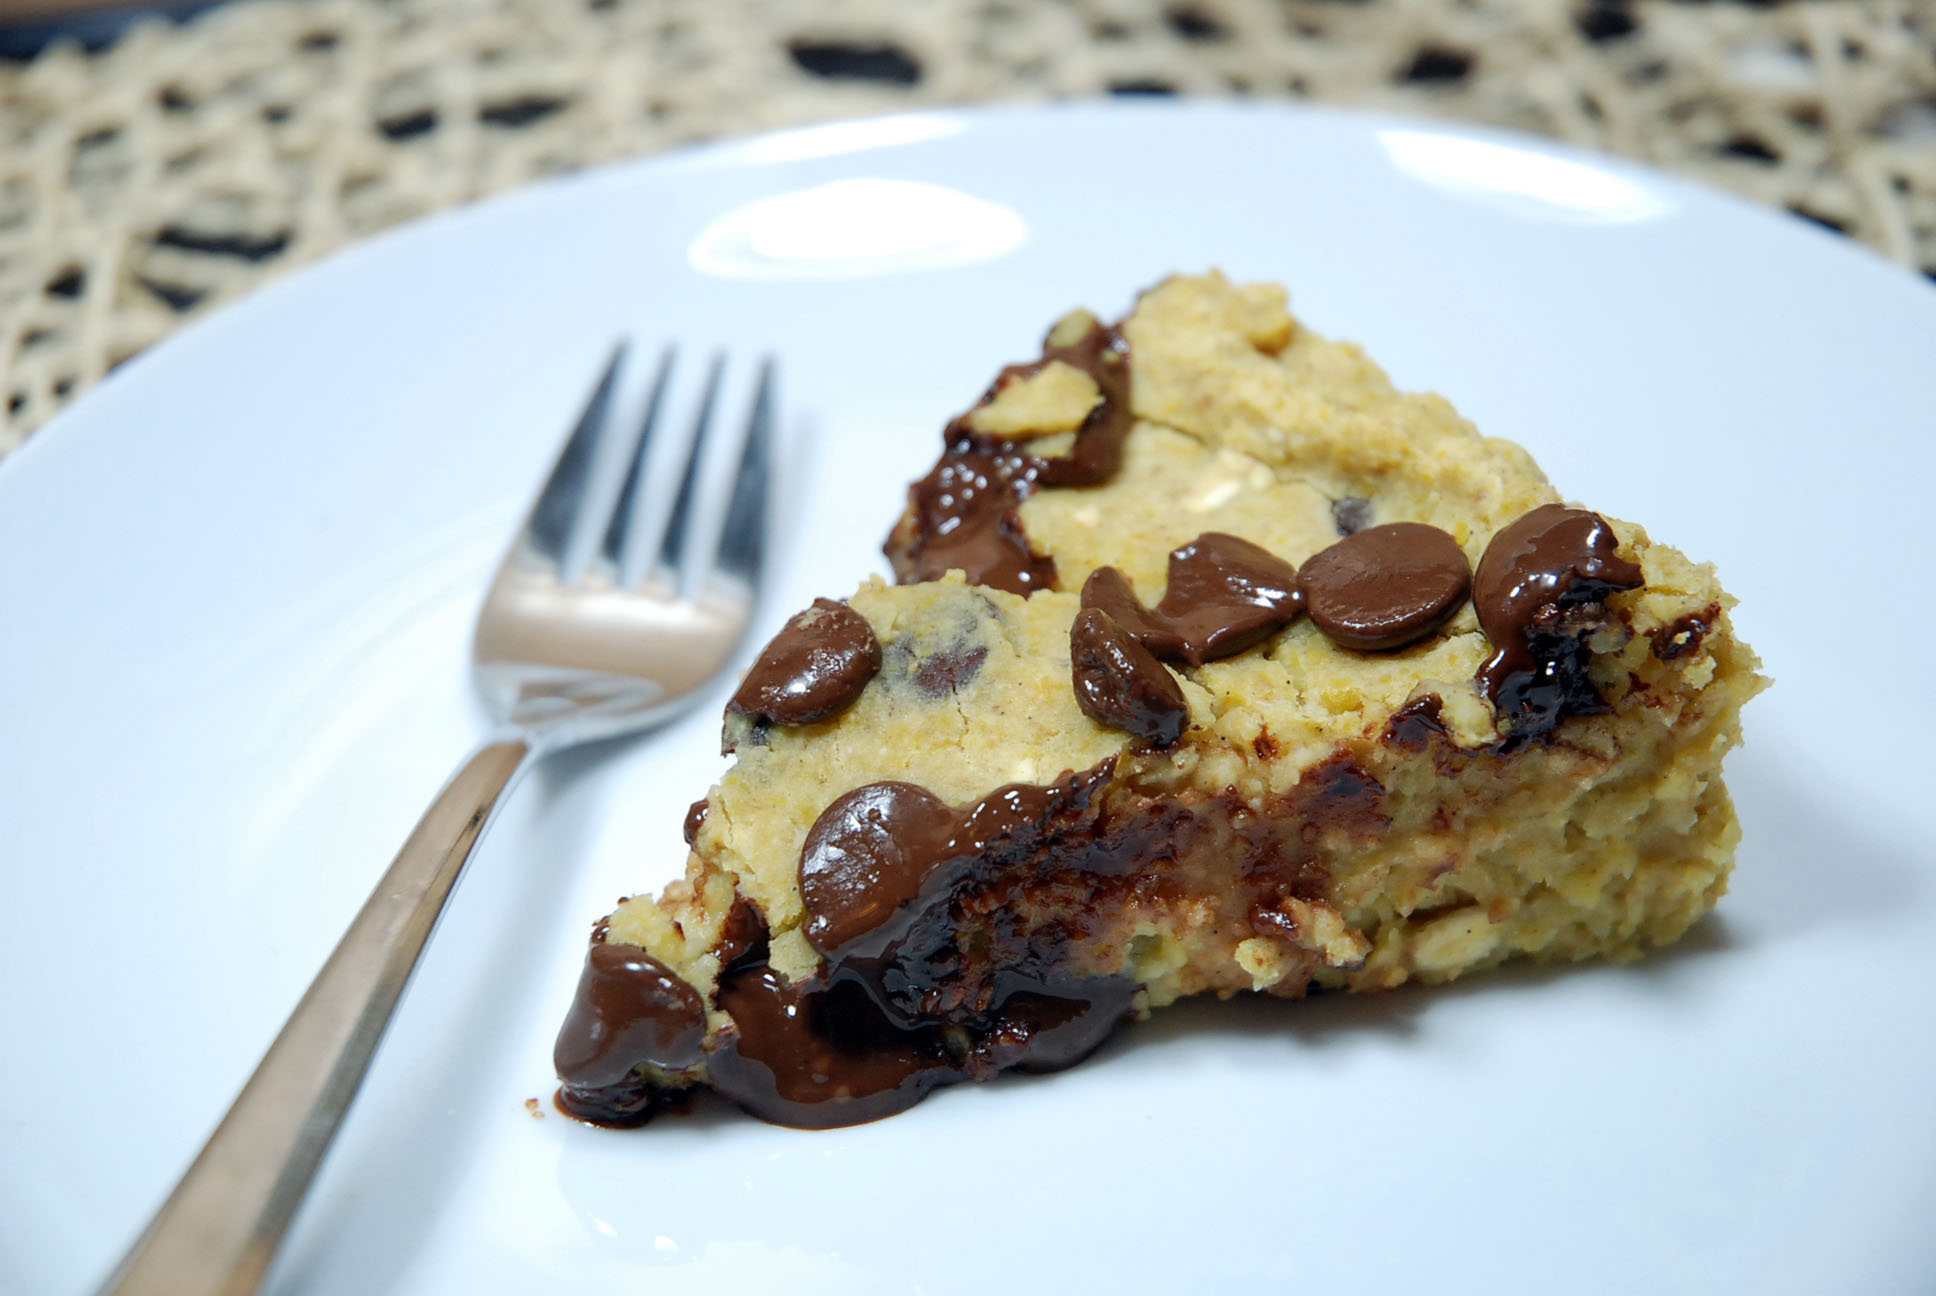 Cake With Dates And Chocolate Chips